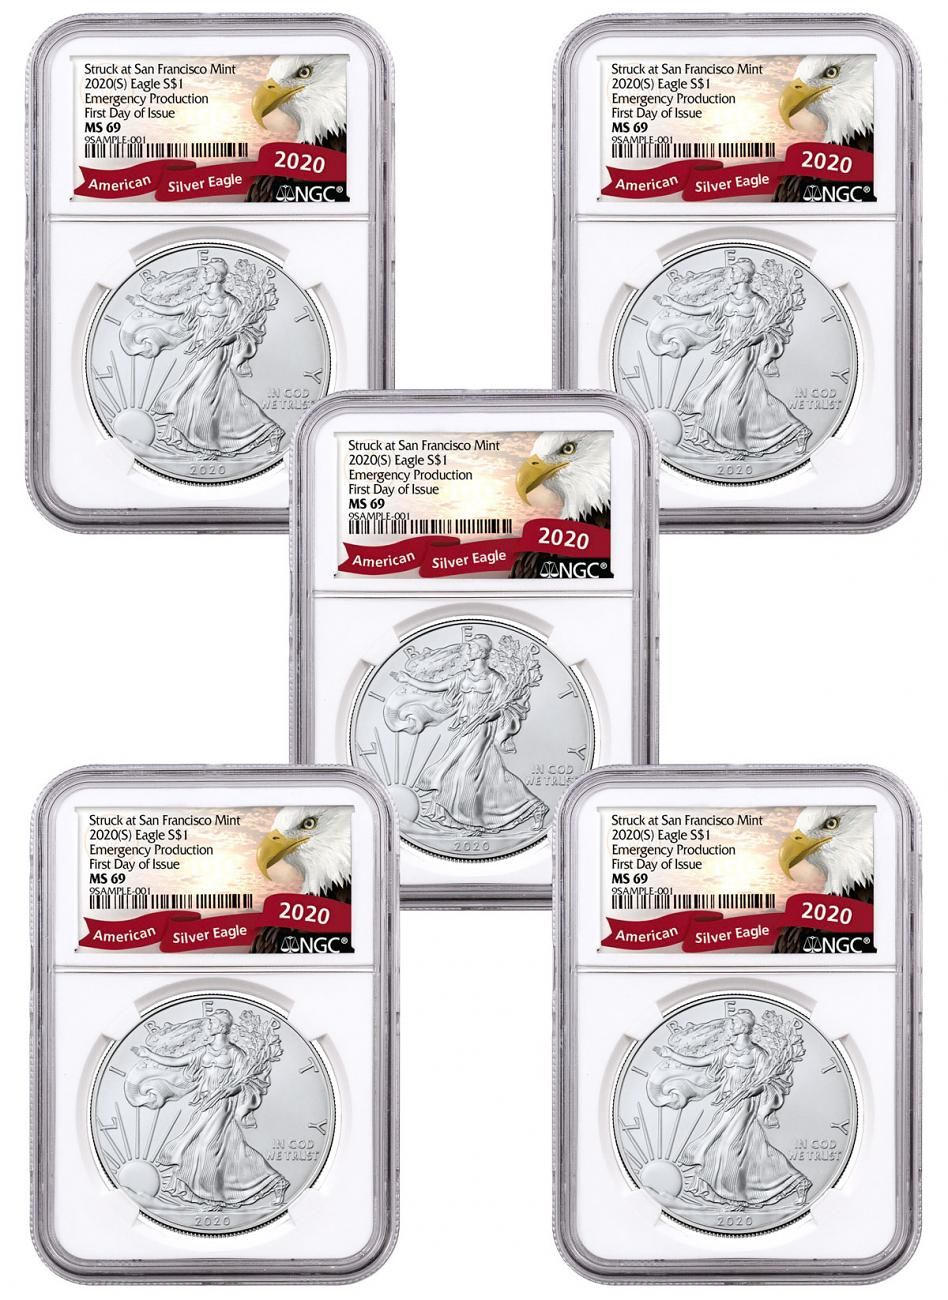 5-Pack - 2020-(S) 1 oz American Silver Eagle Struck at San Francisco Mint Emergency Production NGC MS69 FDI Exclusive Eagle Label